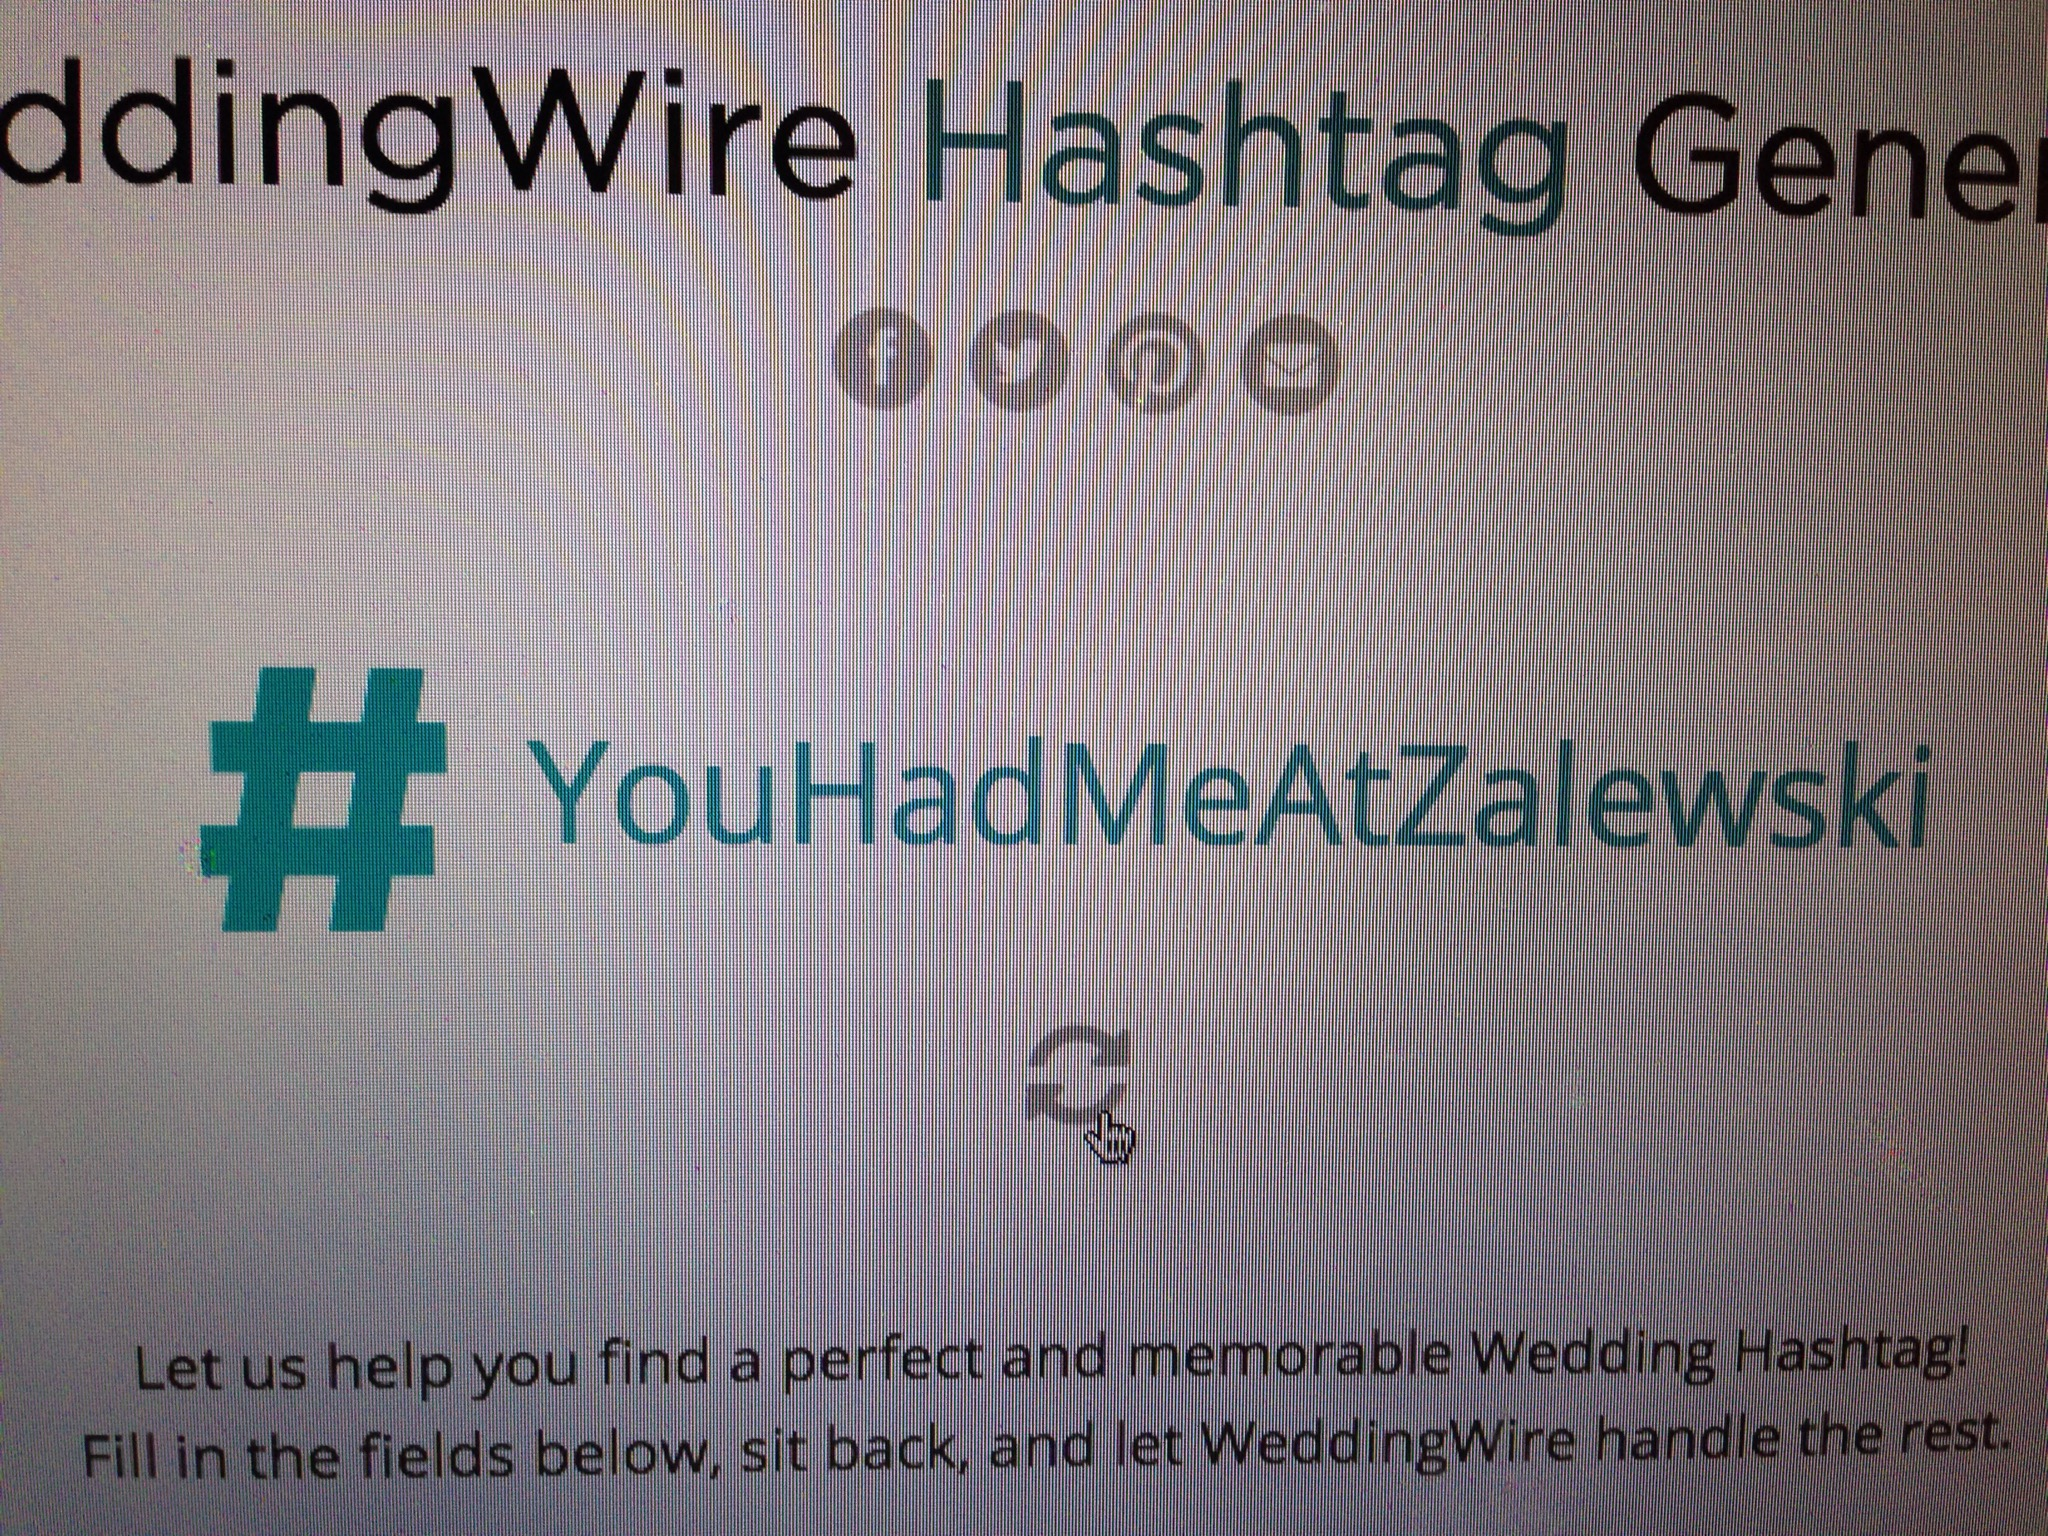 wedding wire, hashtag generator, wedding planning, social media